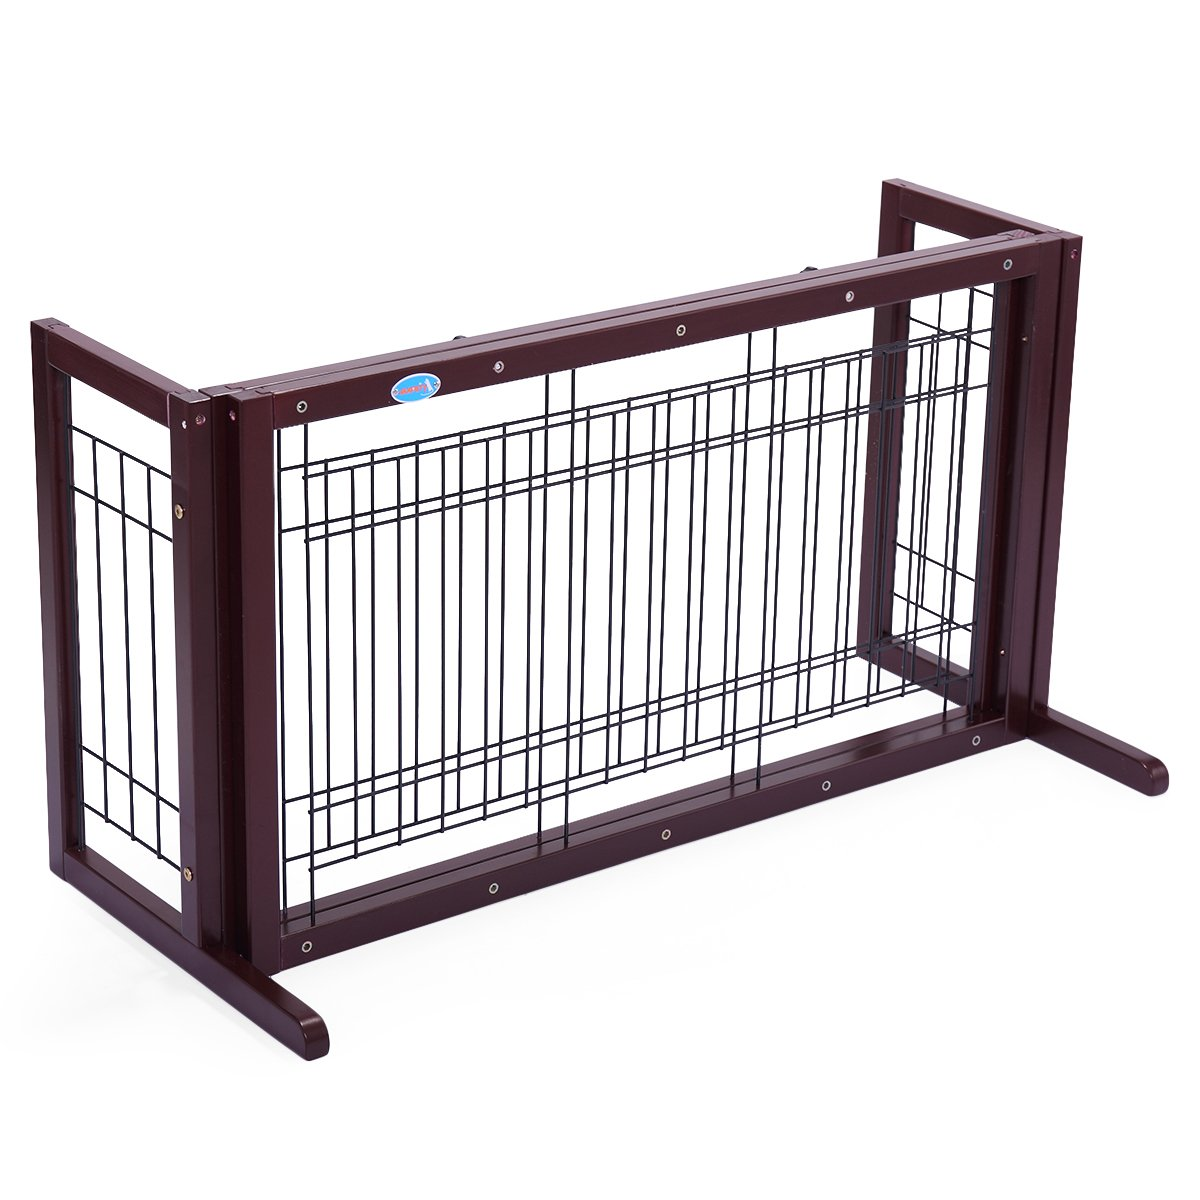 JAXPETY Pet Fence Gate Free Standing Adjustable Dog Gate Indoor Solid Wood Construction (Solid Wood) by JAXPETY